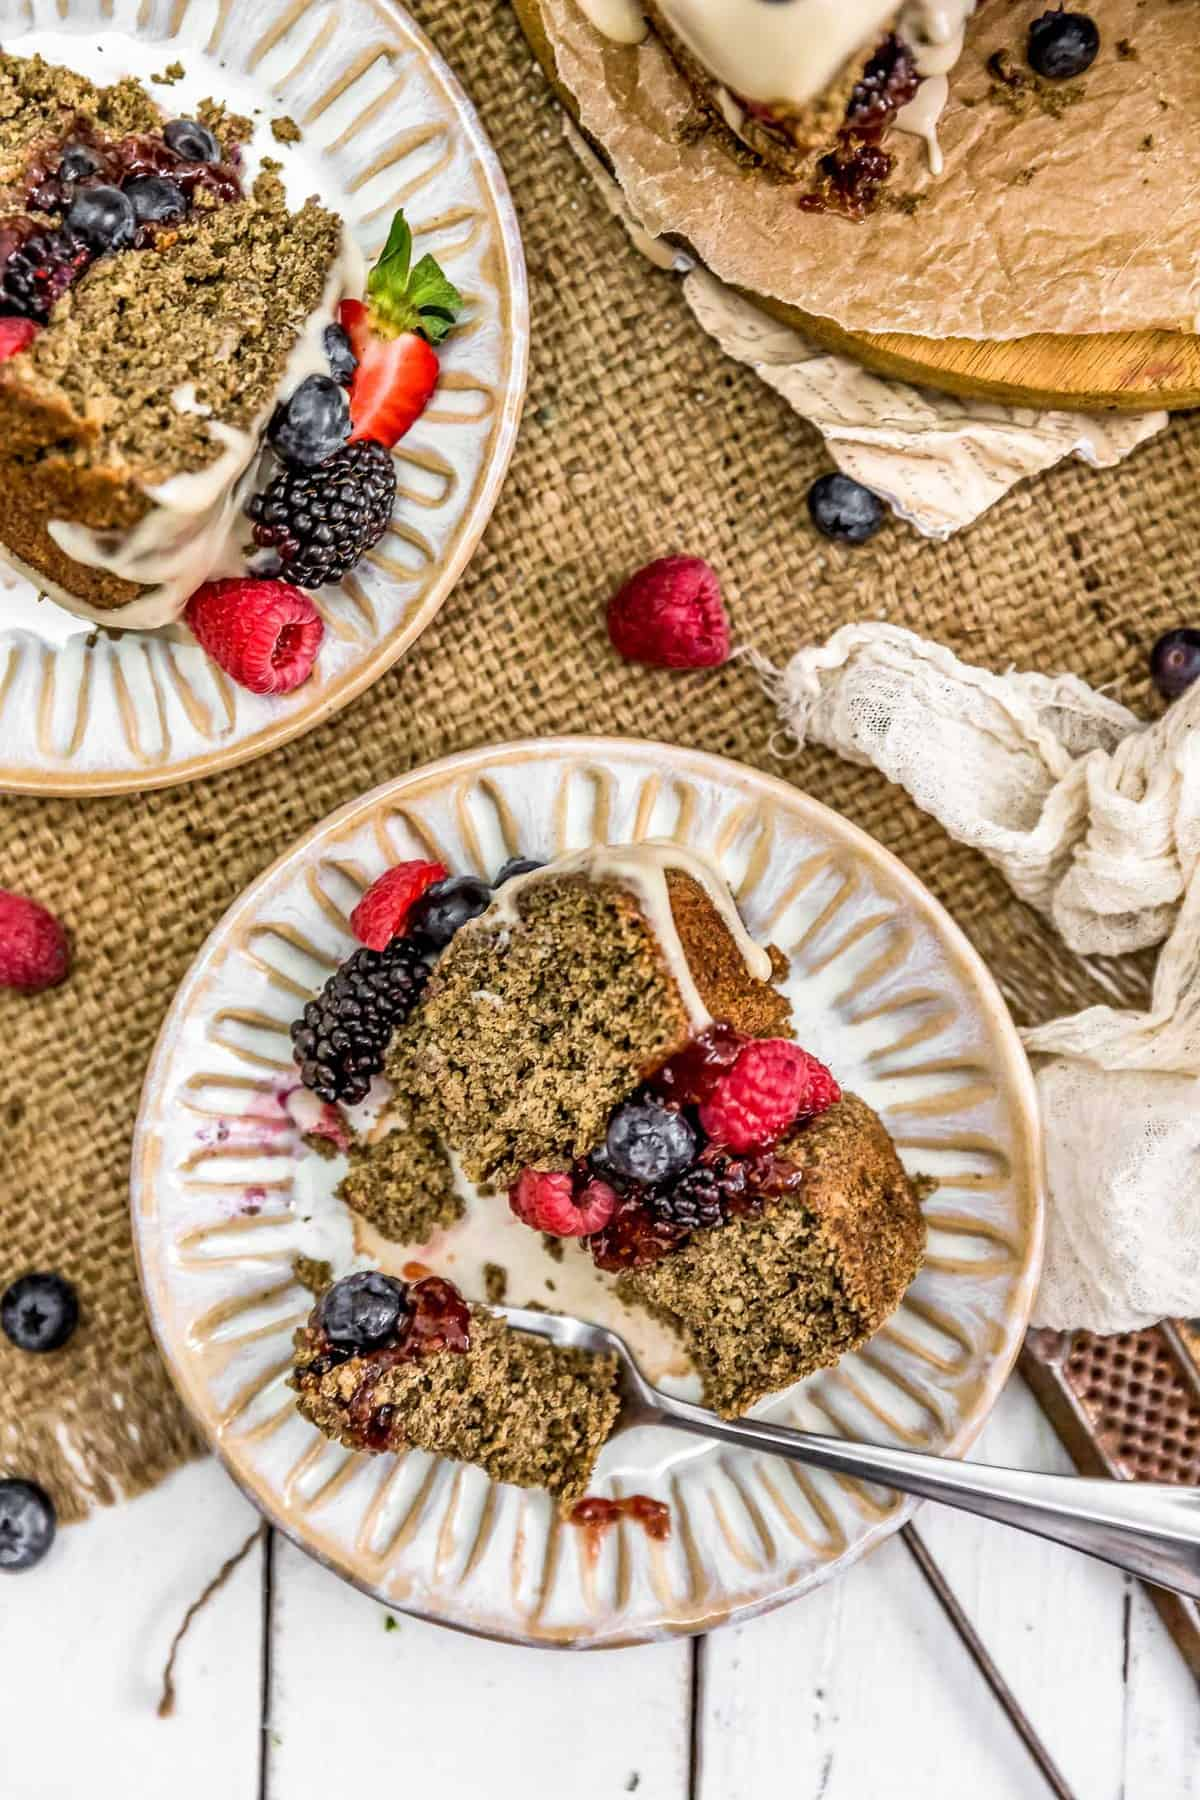 Two slices of Healthy Vegan Buckwheat Cake